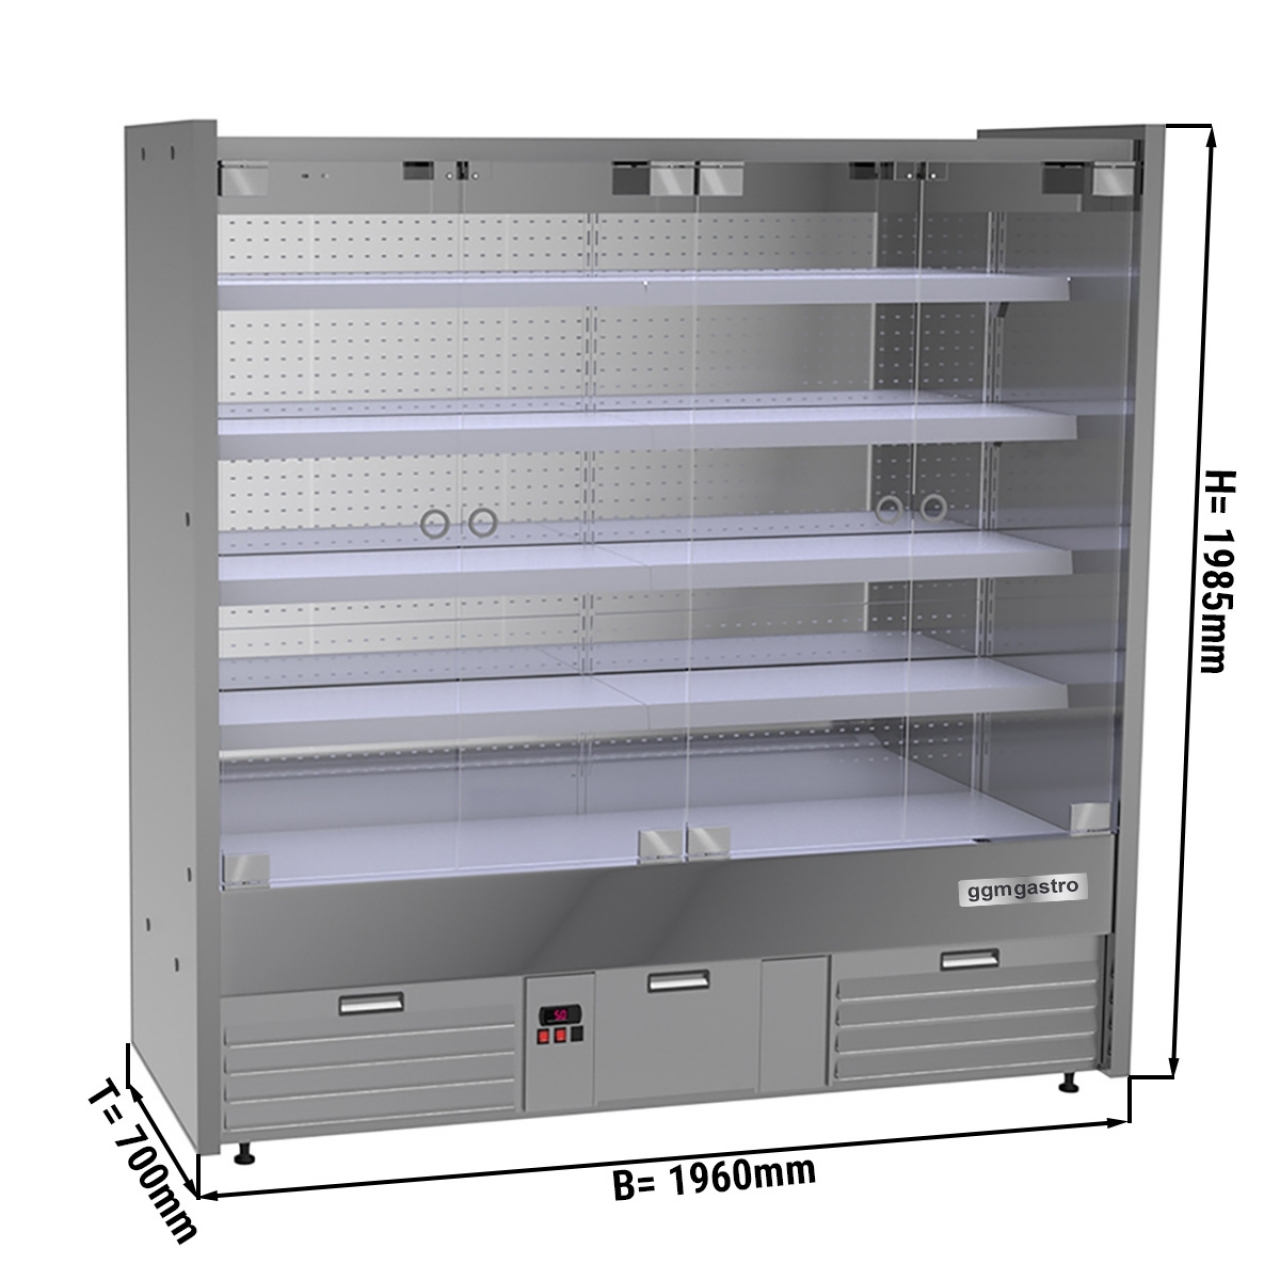 Wall cooling shelf - 2.0 x 0.7 m - with 4 shelves